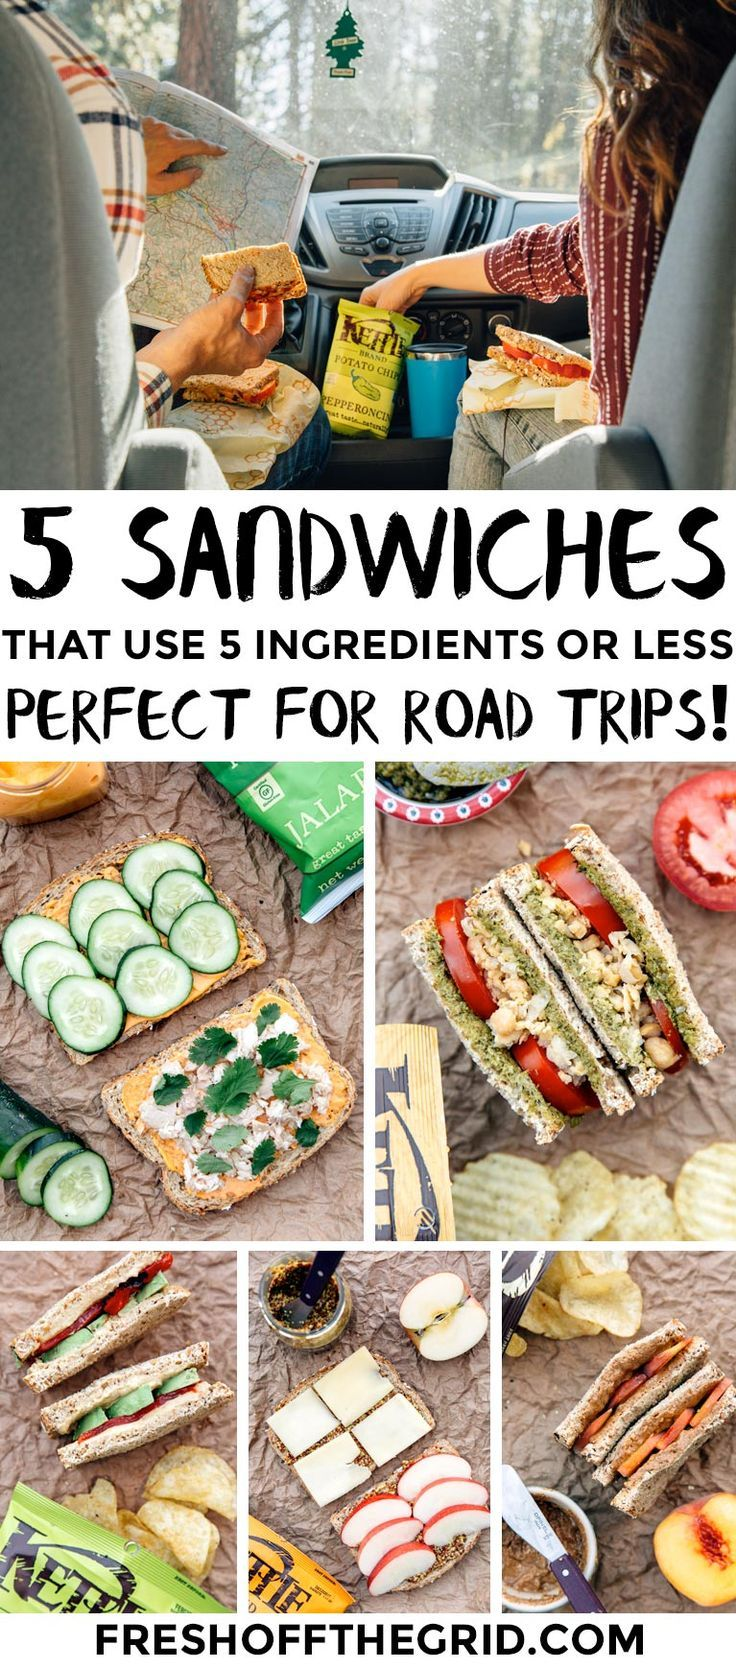 5 Sandwiches That Use 5 Ingredients Or Less Perfect Lunches For Camping And Road Trips Road Trip Food Easy Camping Meals Food